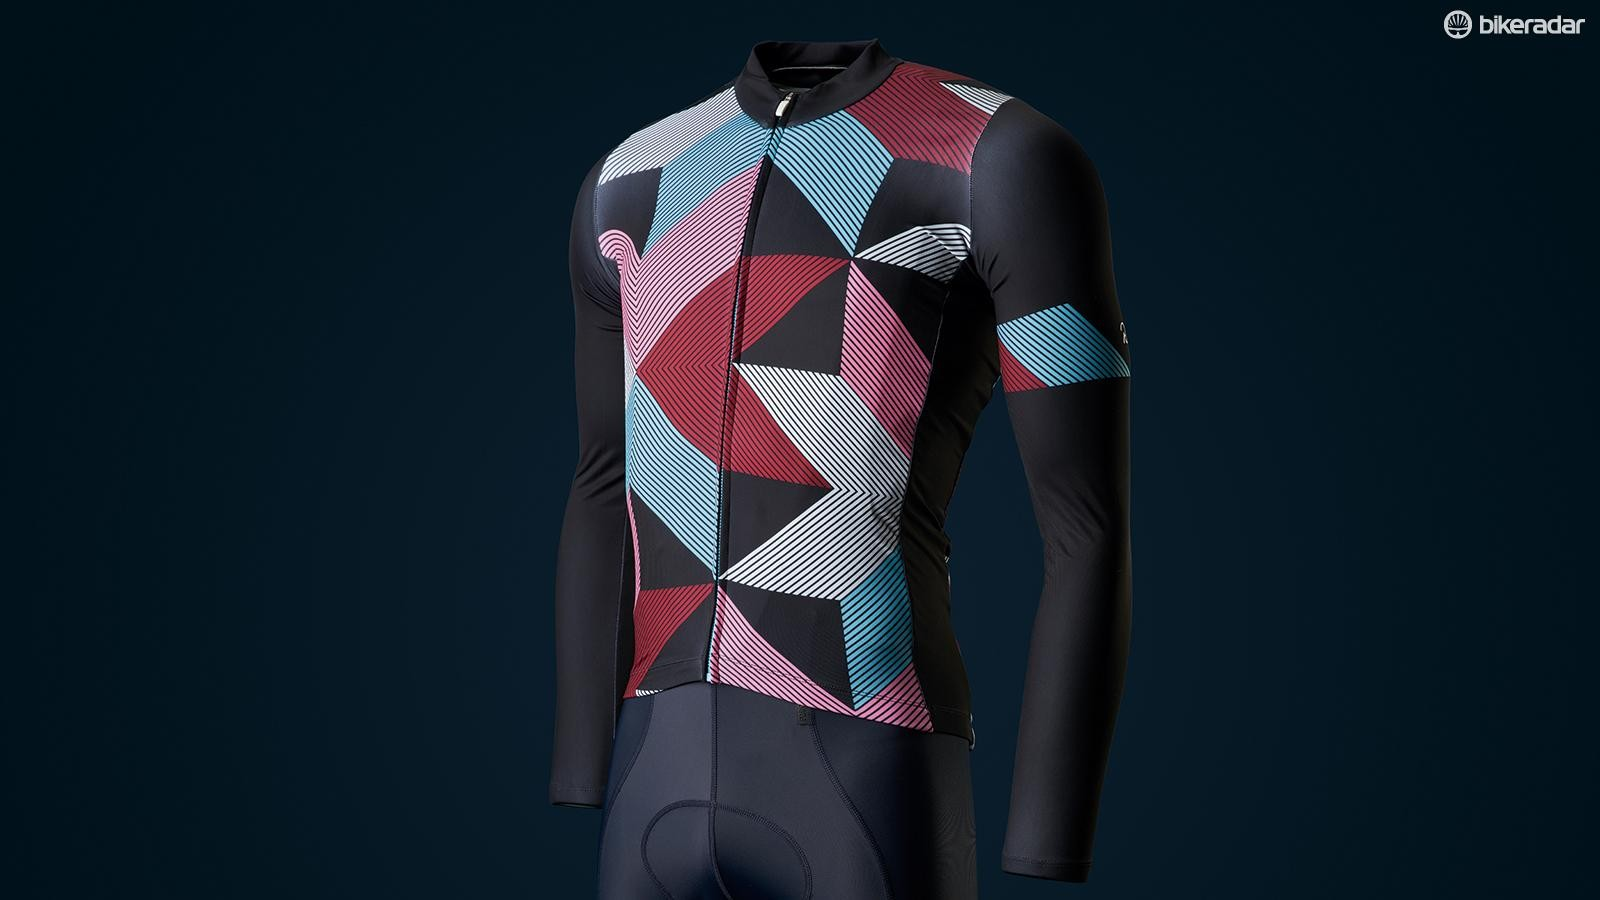 The fabric is extremely stretchy, and fits as close as a skinsuit